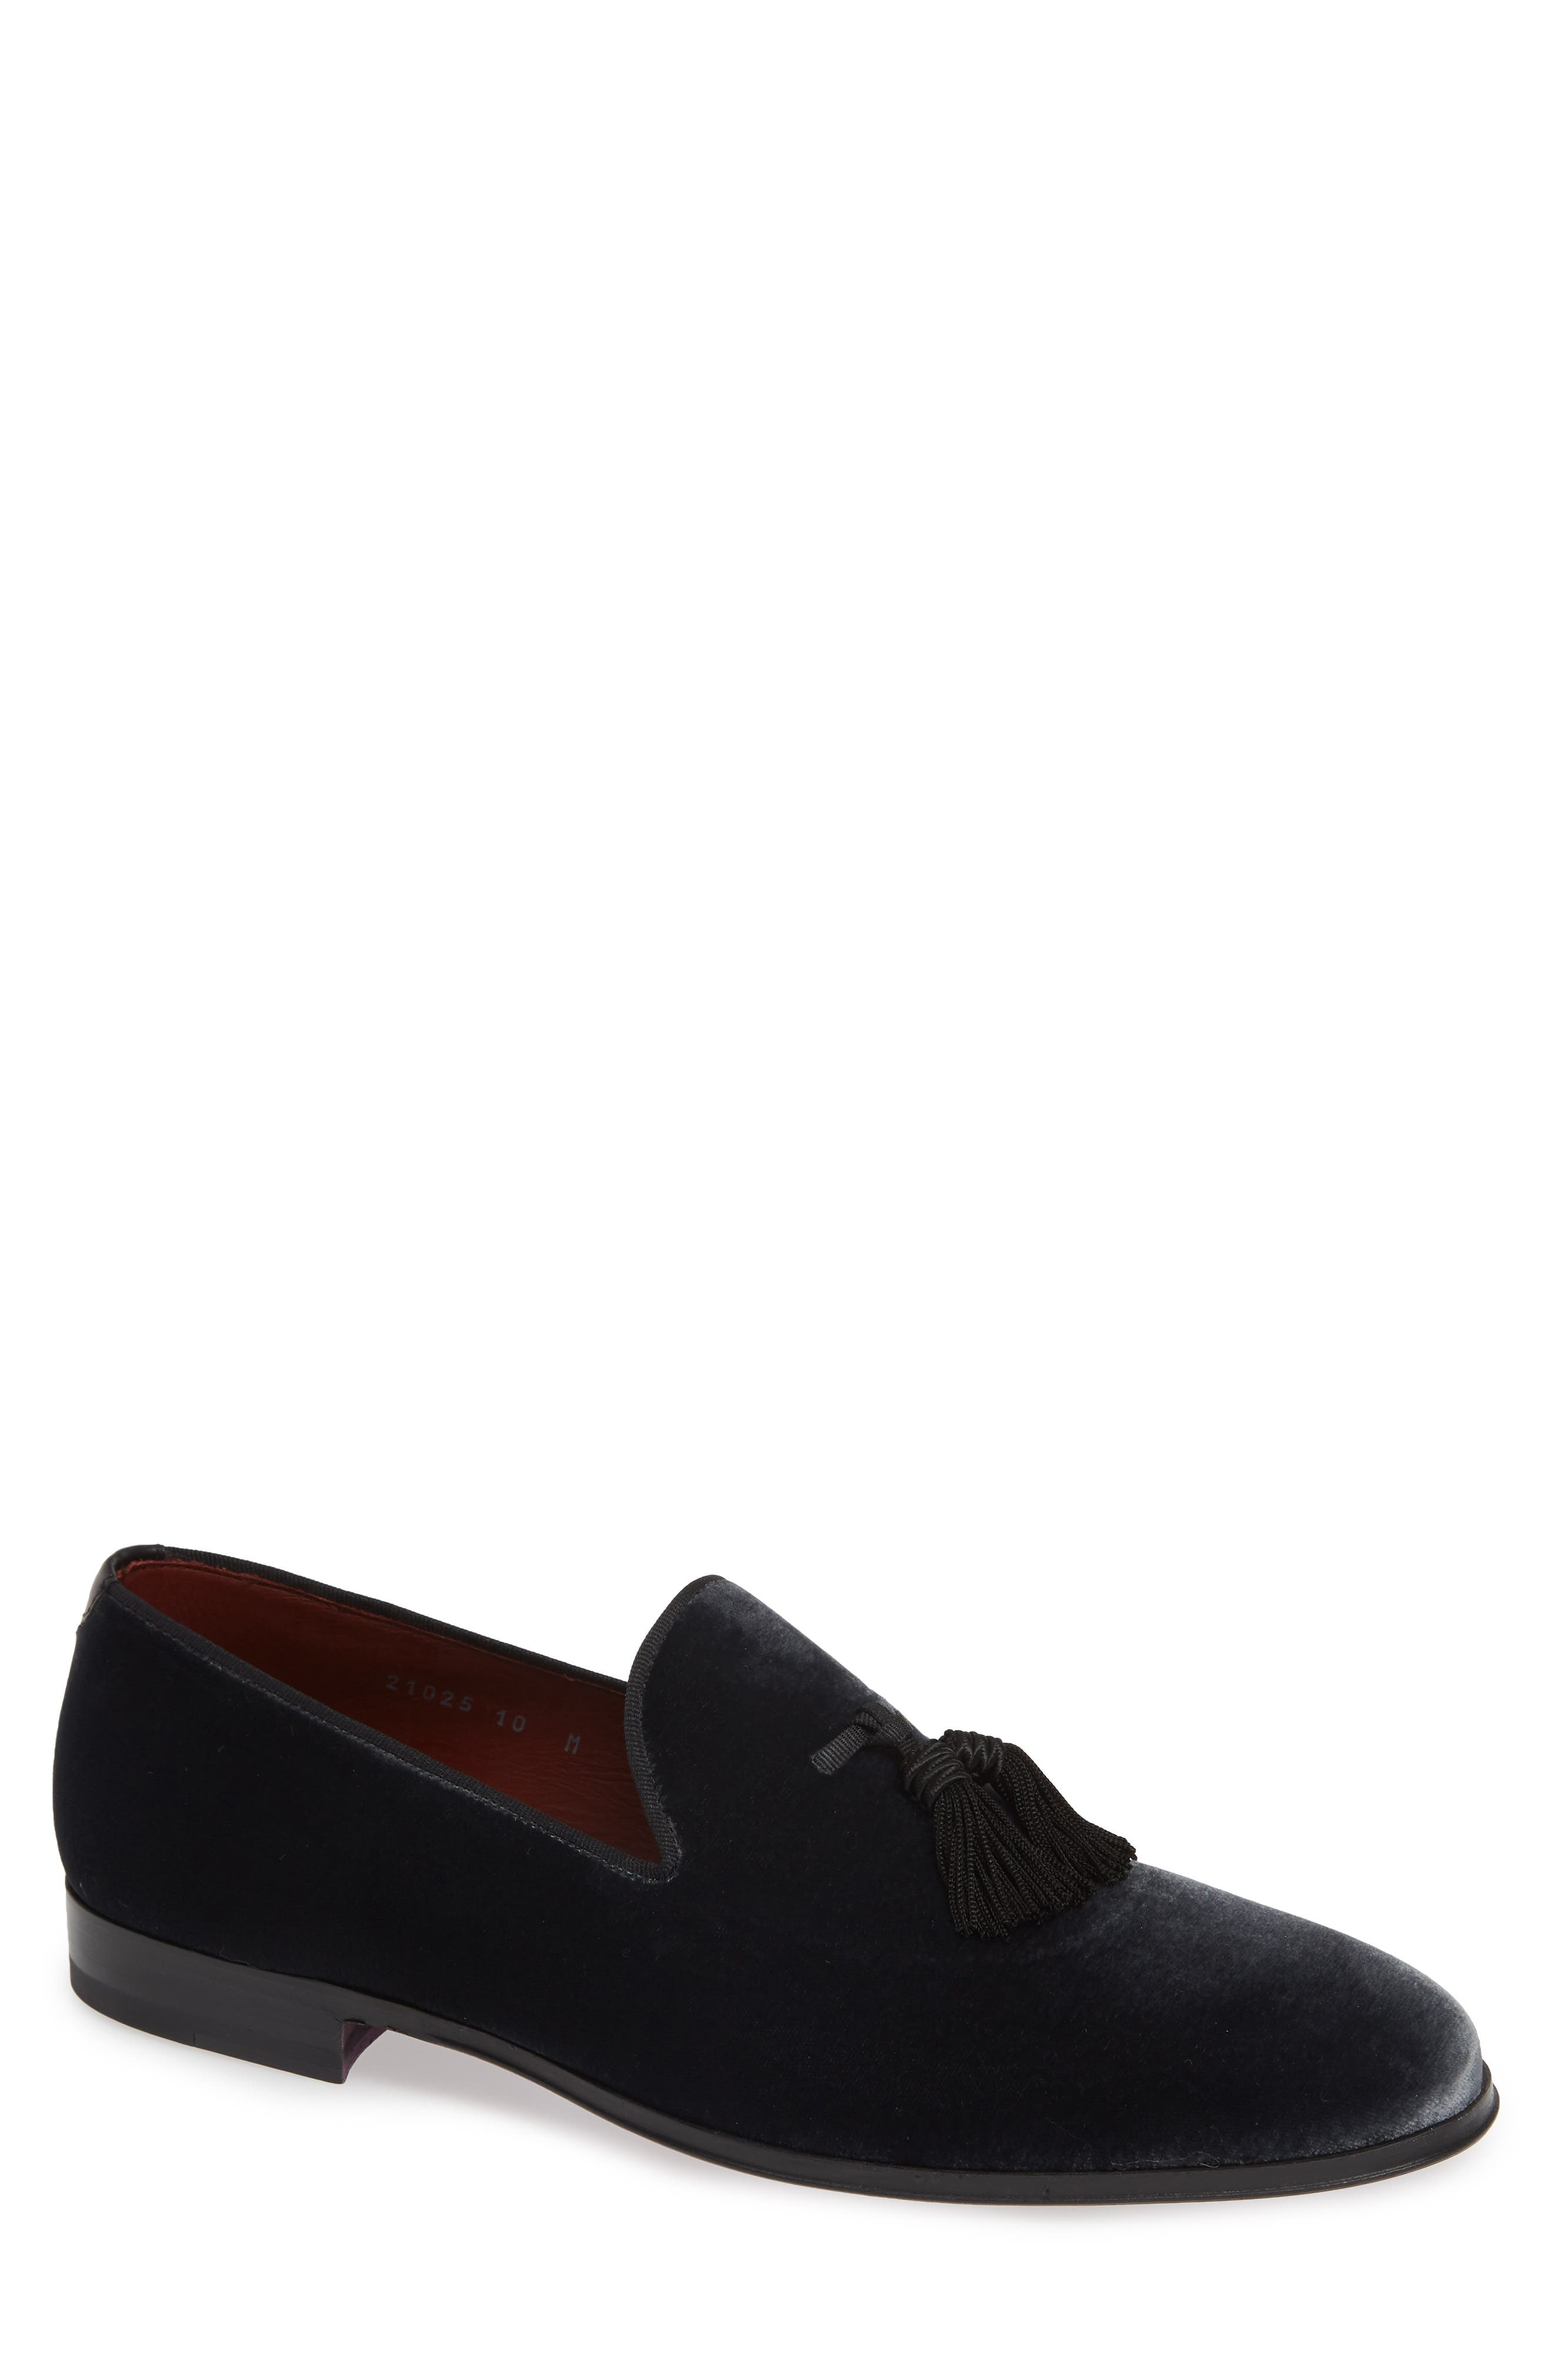 Donzel Tassel Loafer,                             Main thumbnail 1, color,                             GREY LEATHER